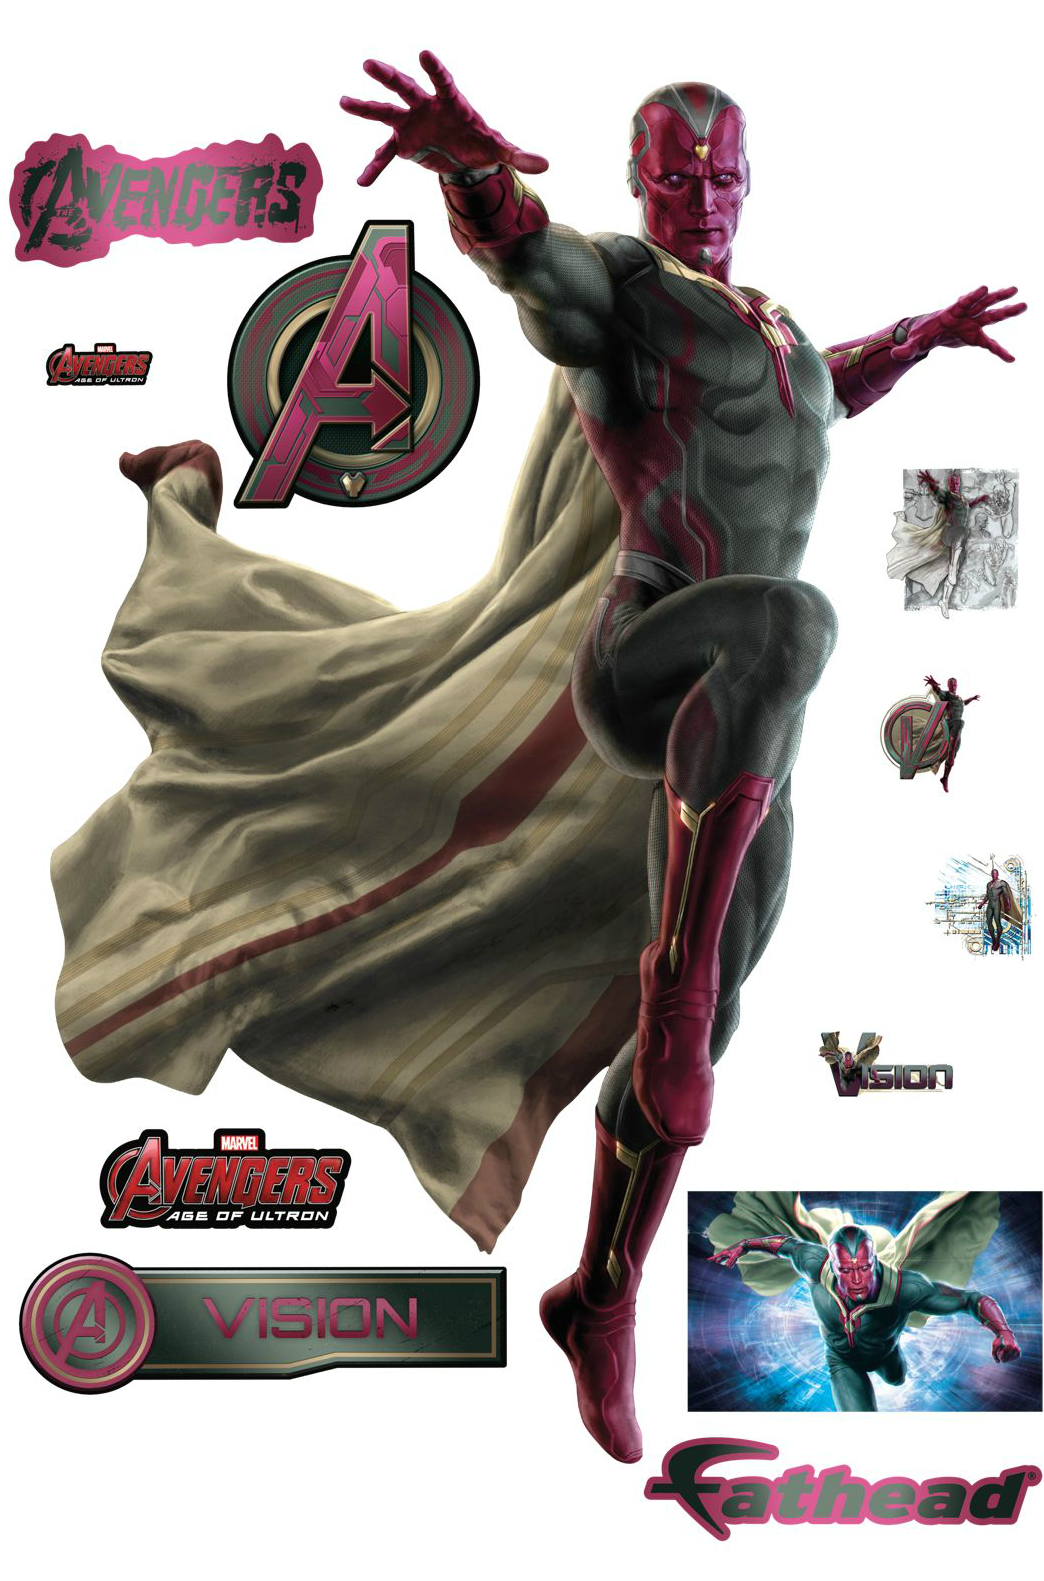 Avengers-Age-of-Ultron-Vision-Fathead.png